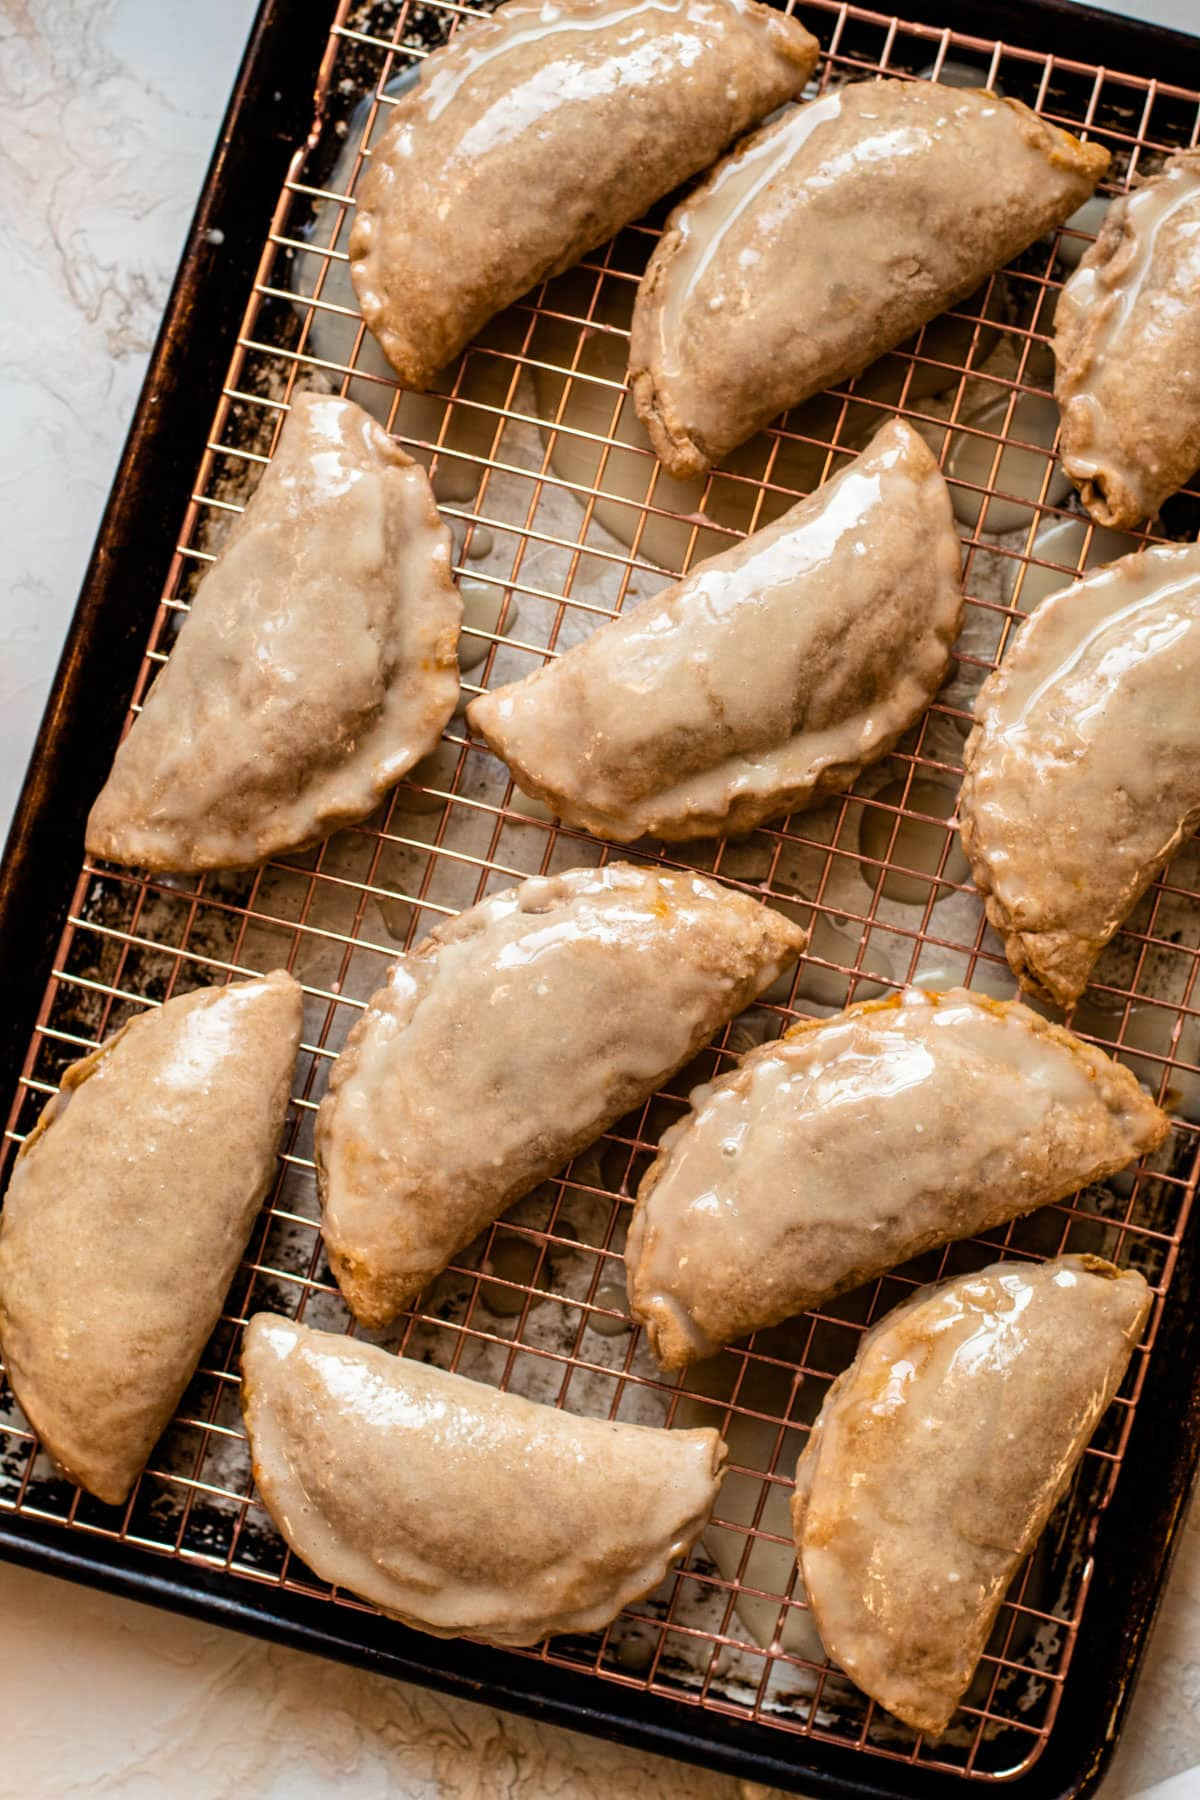 Pumpkin pasties inspired by harry potter sitting glazed on a sheet tray.